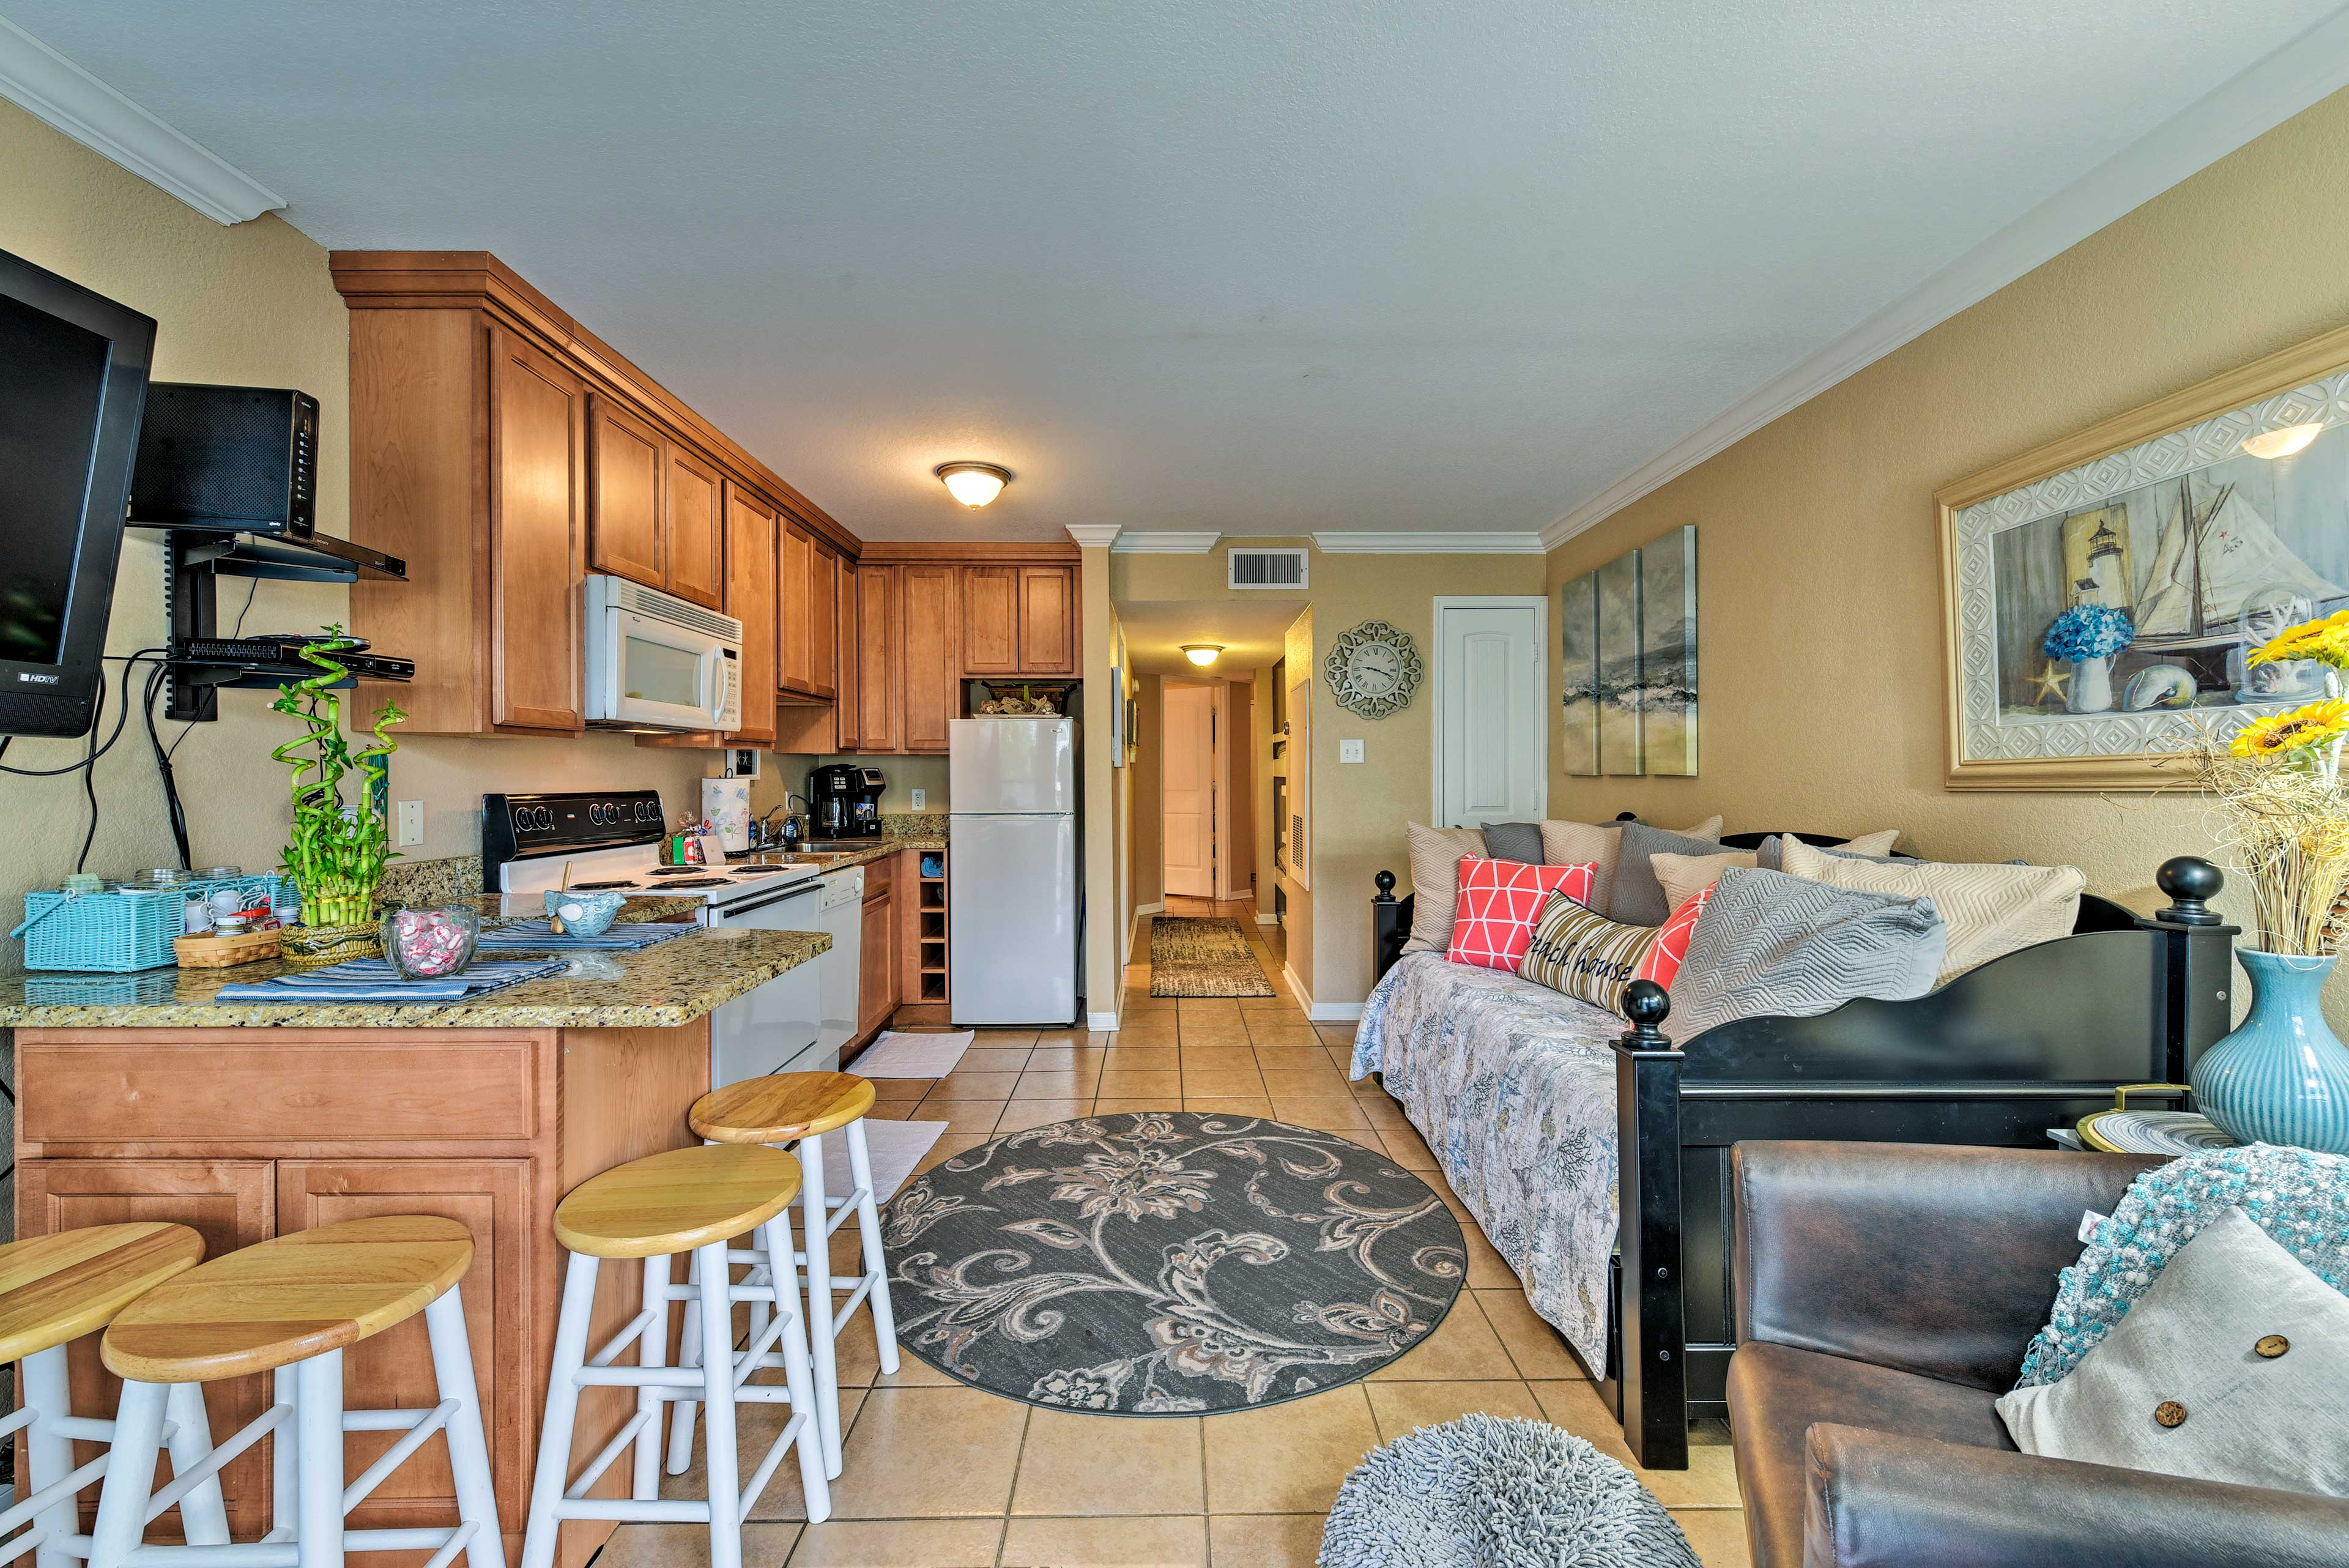 Hit Galveston's beach from this ideally located vacation rental condo!